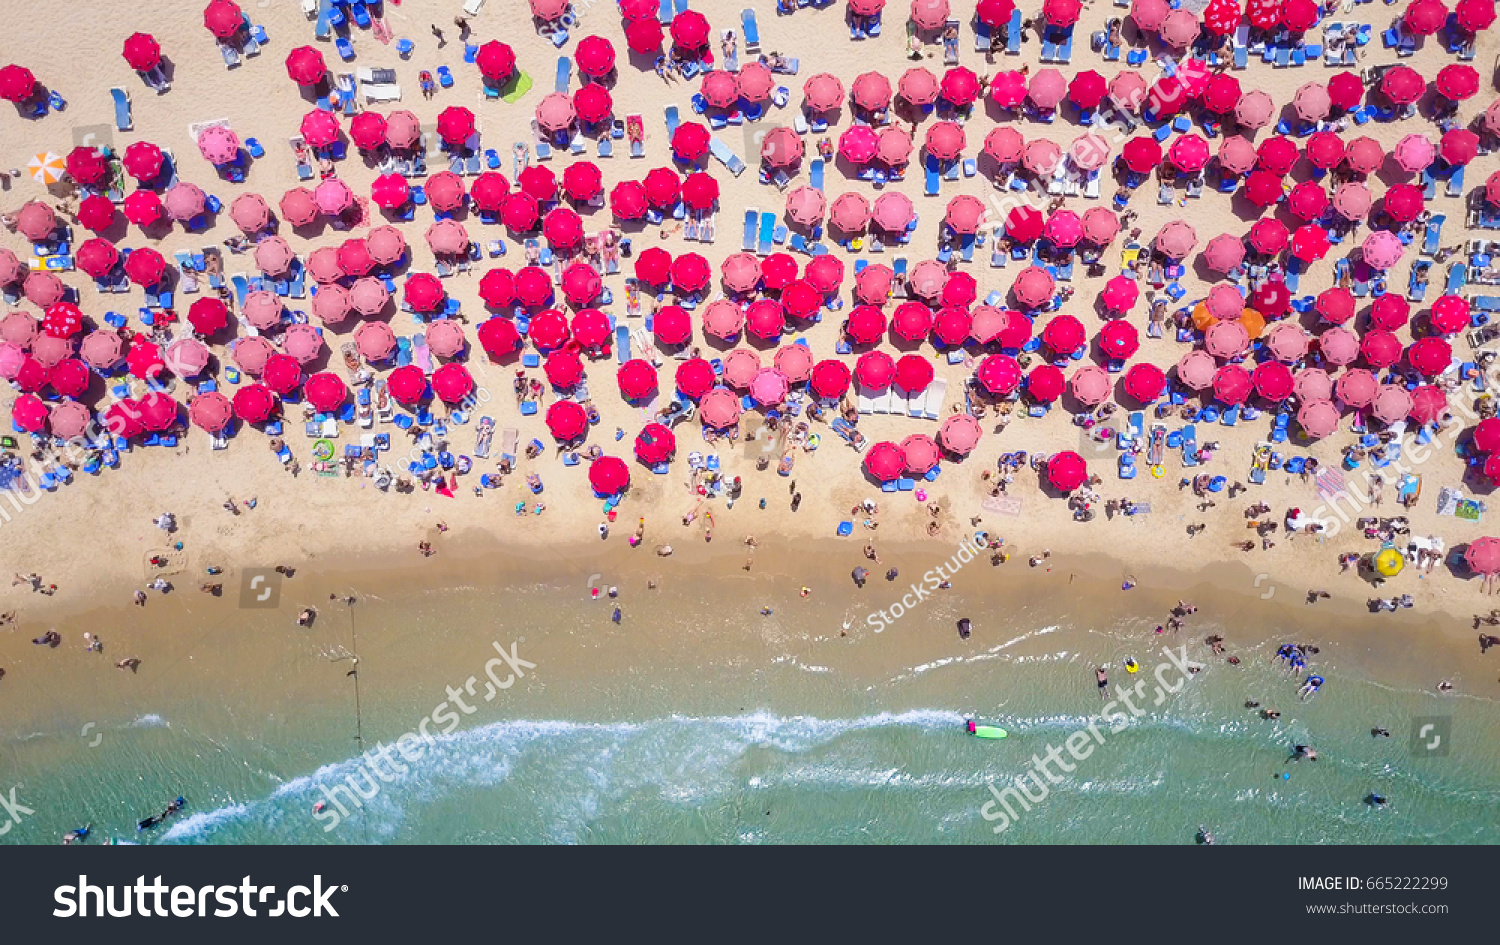 Tropical beach with colorful umbrellas - Top down aerial view #665222299